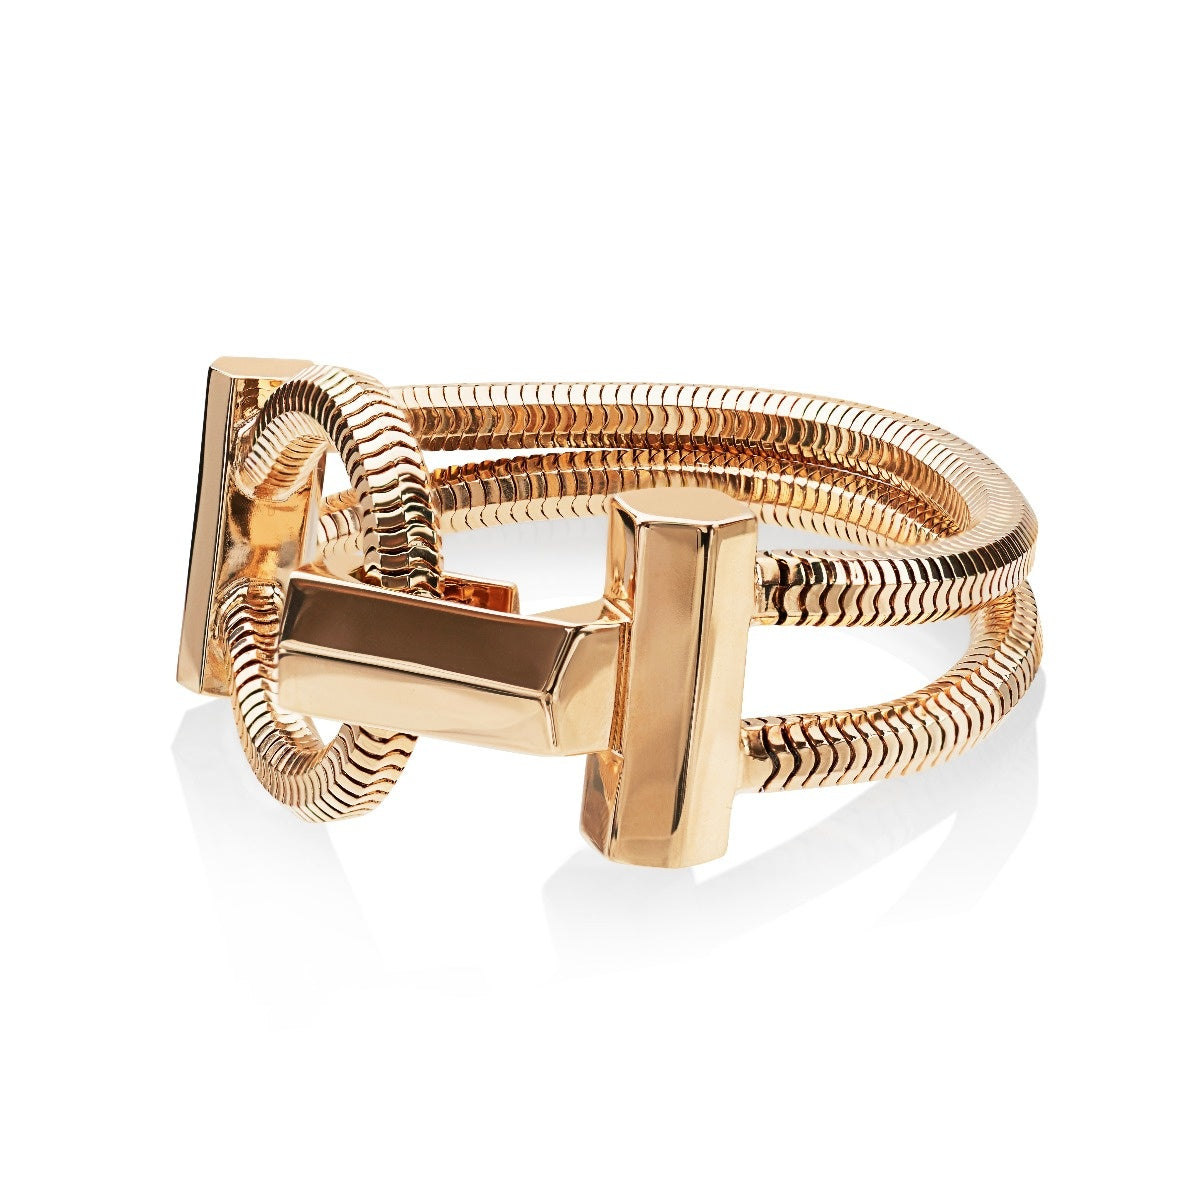 Schumacher Clasp Bracelet </br> 18ct Yellow Gold on Brass